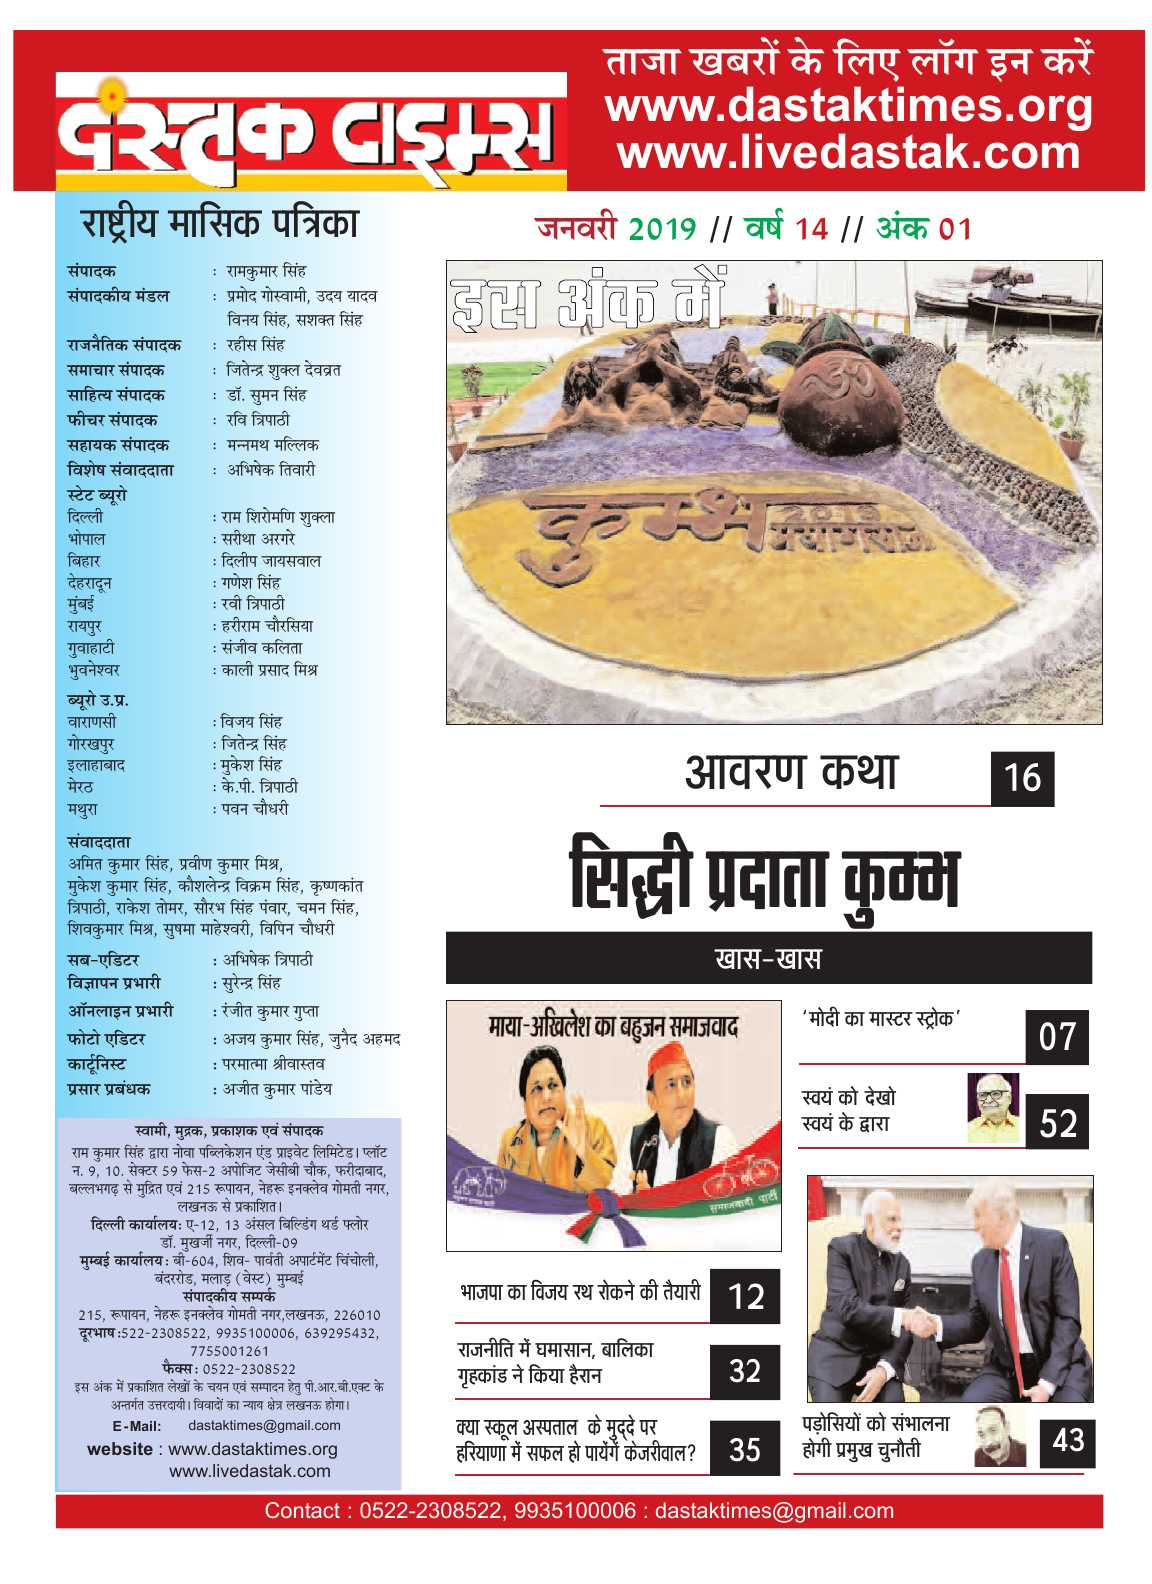 Dastak Times for E-Magazine 15 Jan 2019 new3